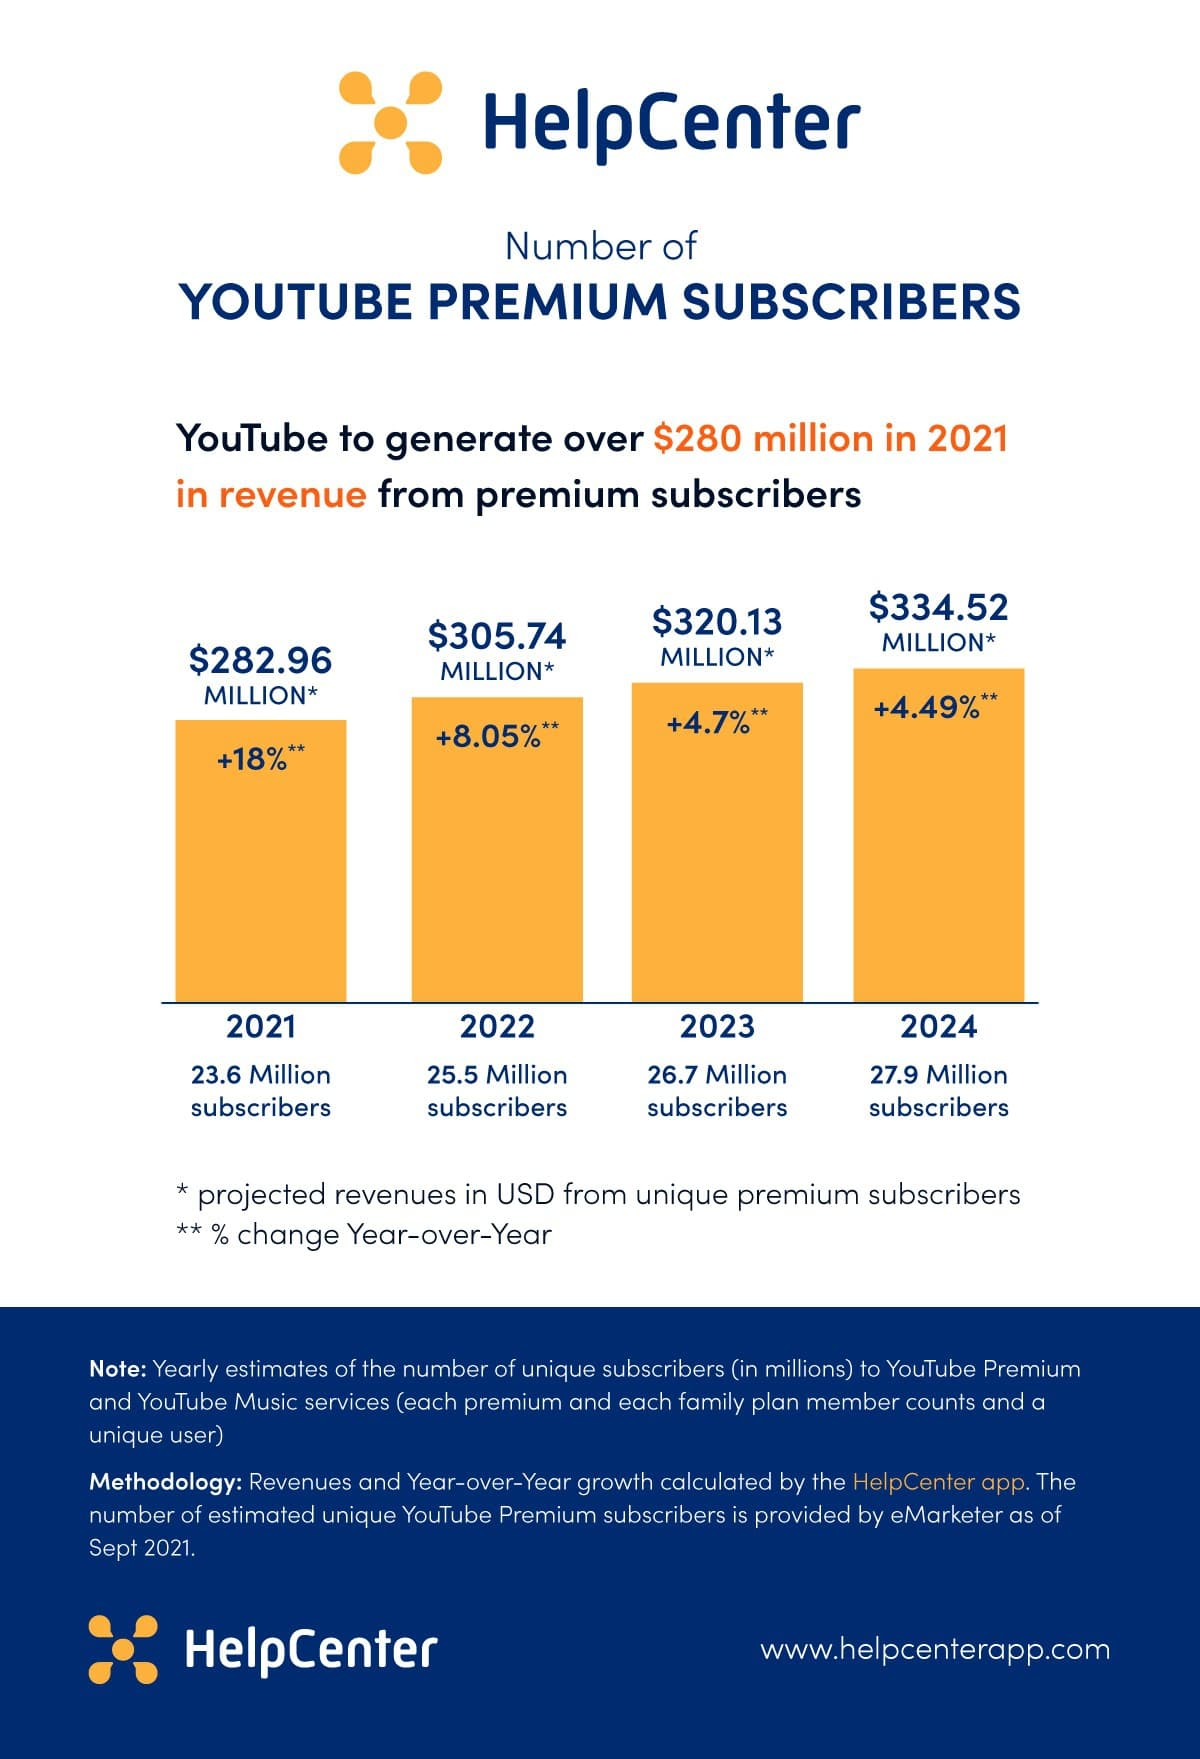 Youtube premium subscribers - revenue projection by the HelpCenter app